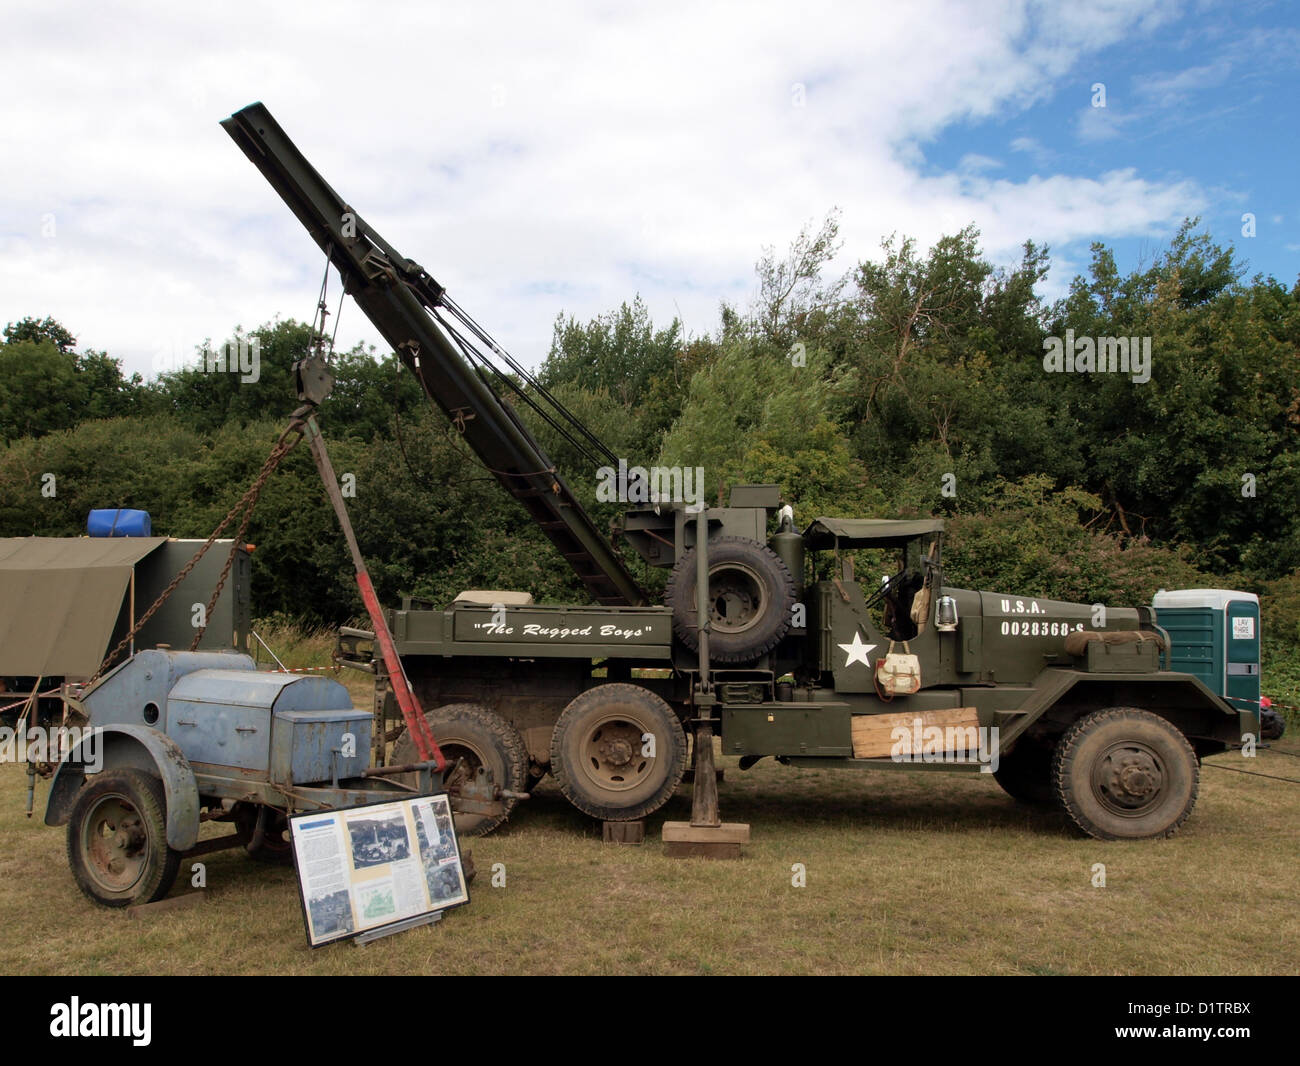 War and Peace Show....The Rugged Boys, 1943 Ward LaFrance M1A1 Model 1000 Series 5, USA - Stock Image